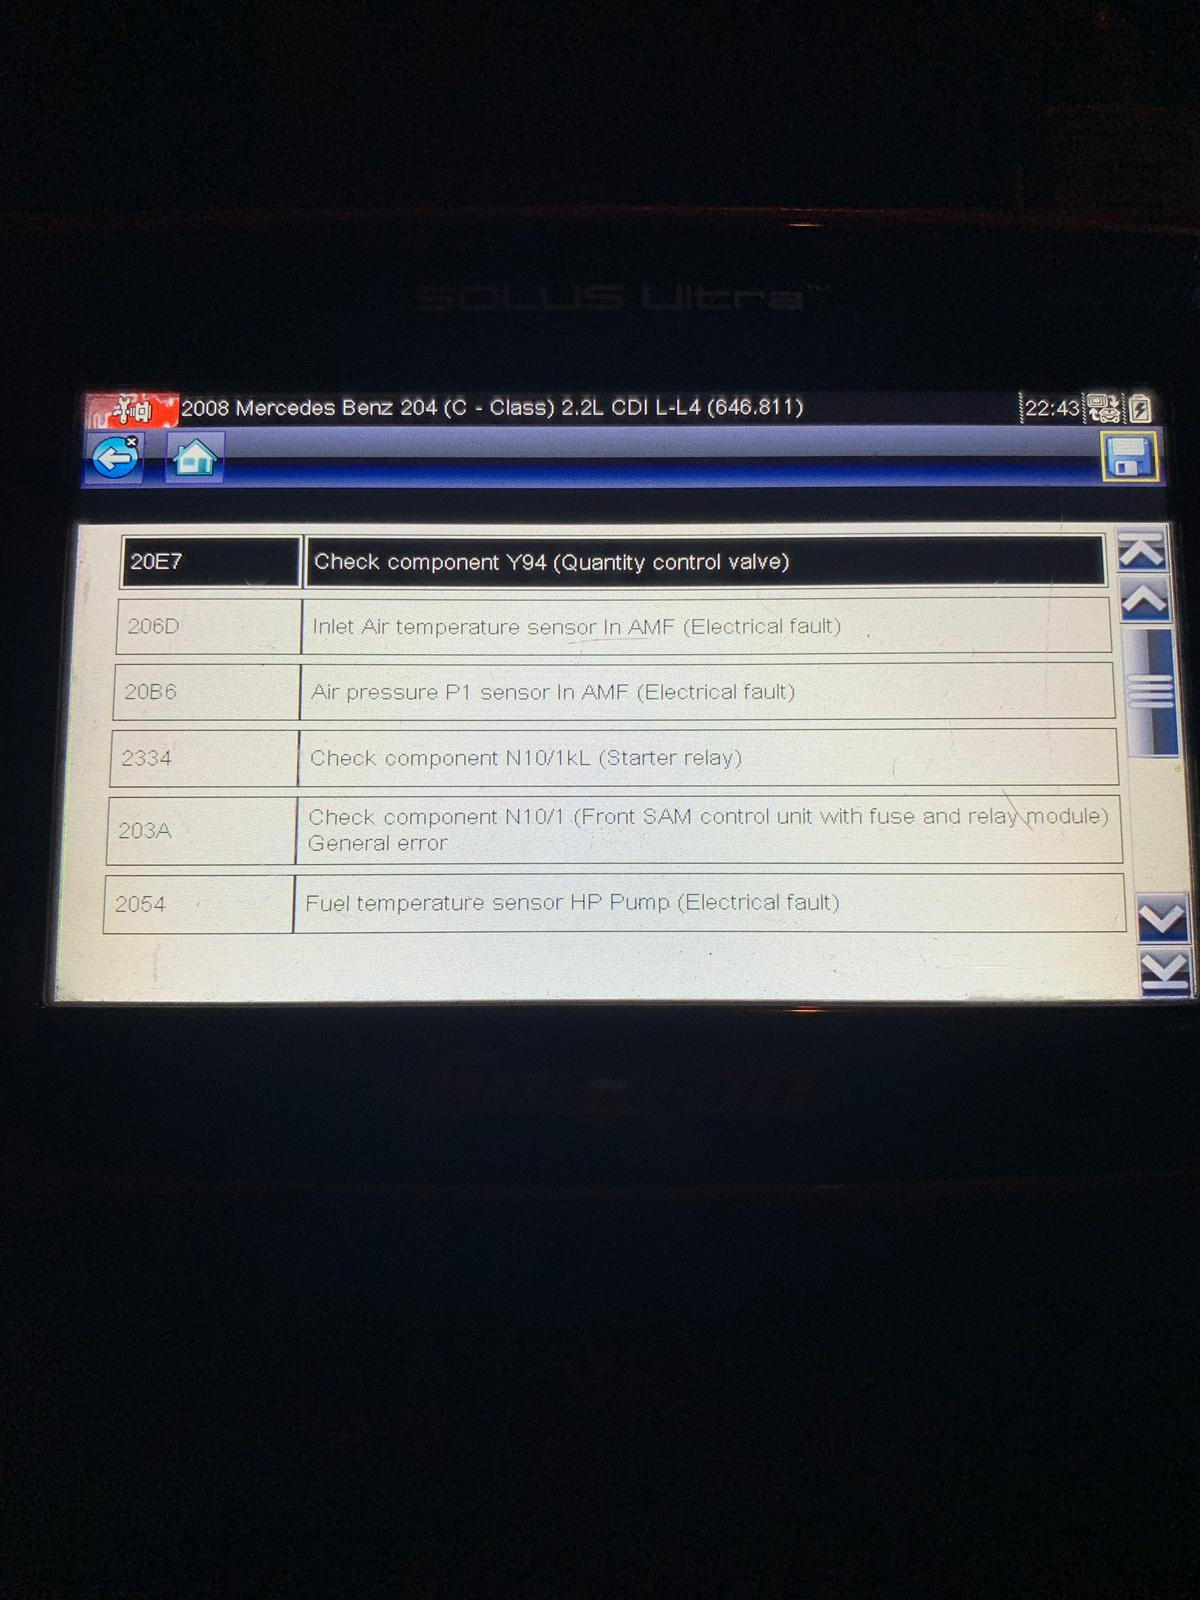 P0402/P0299 Codes and Limp Mode - W204 C250 CDI - MBWorld org Forums